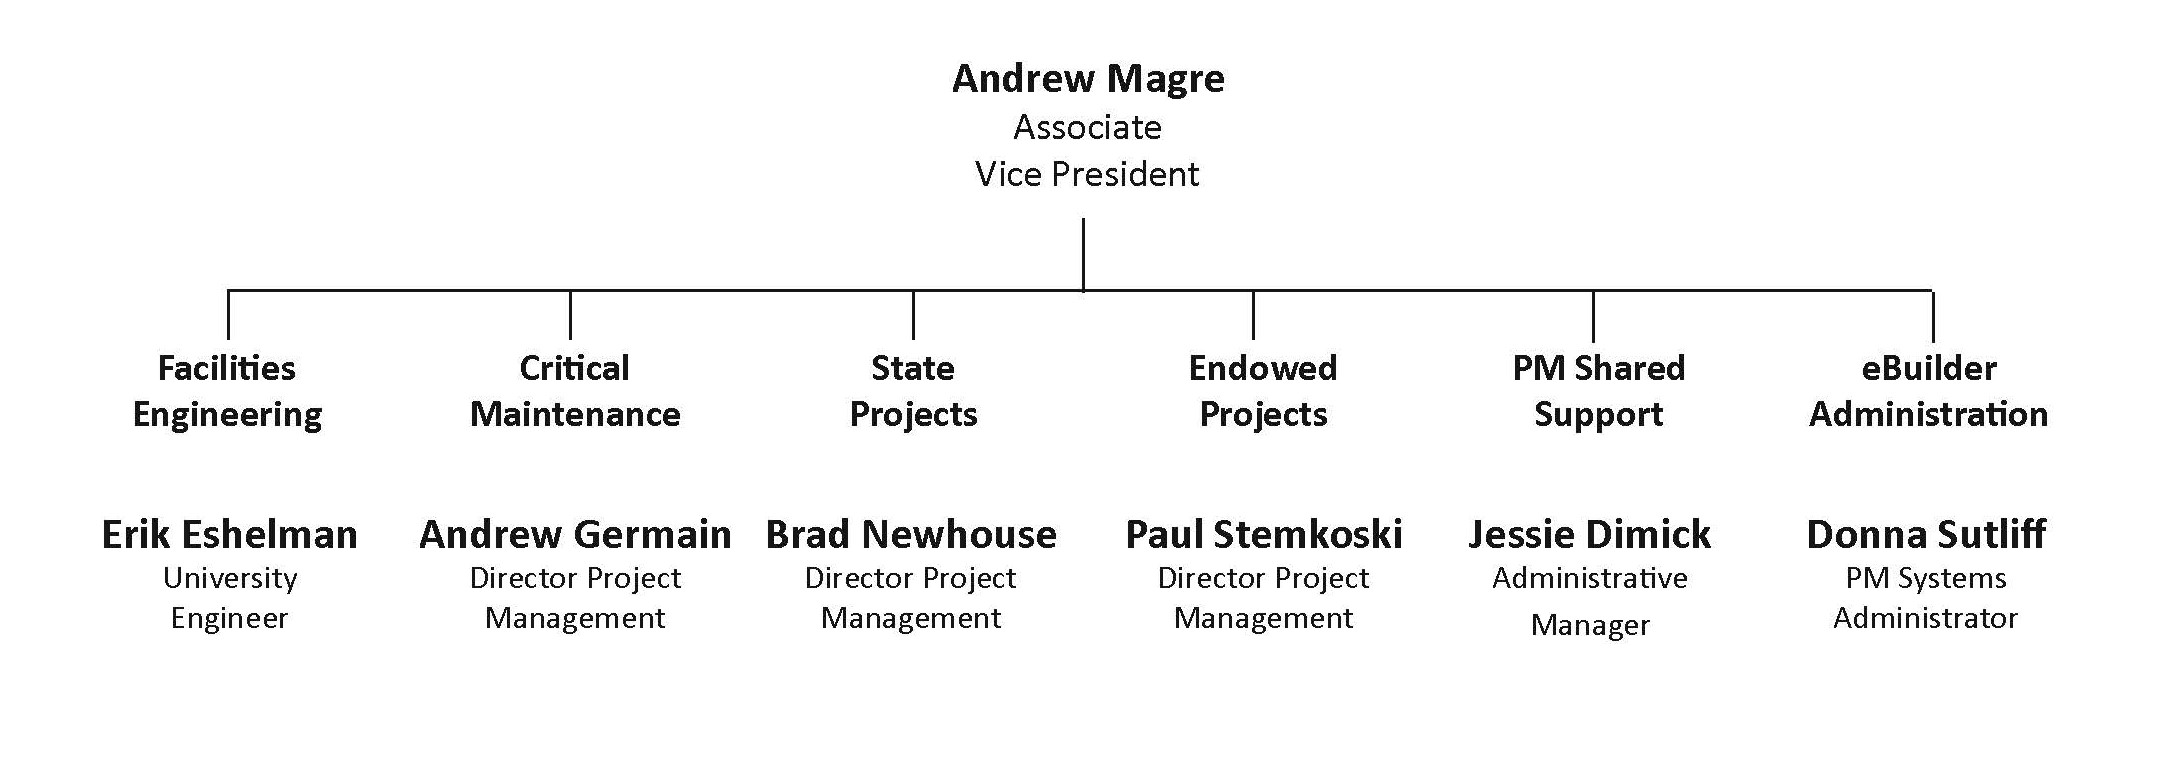 Org chart of the E&PM team.